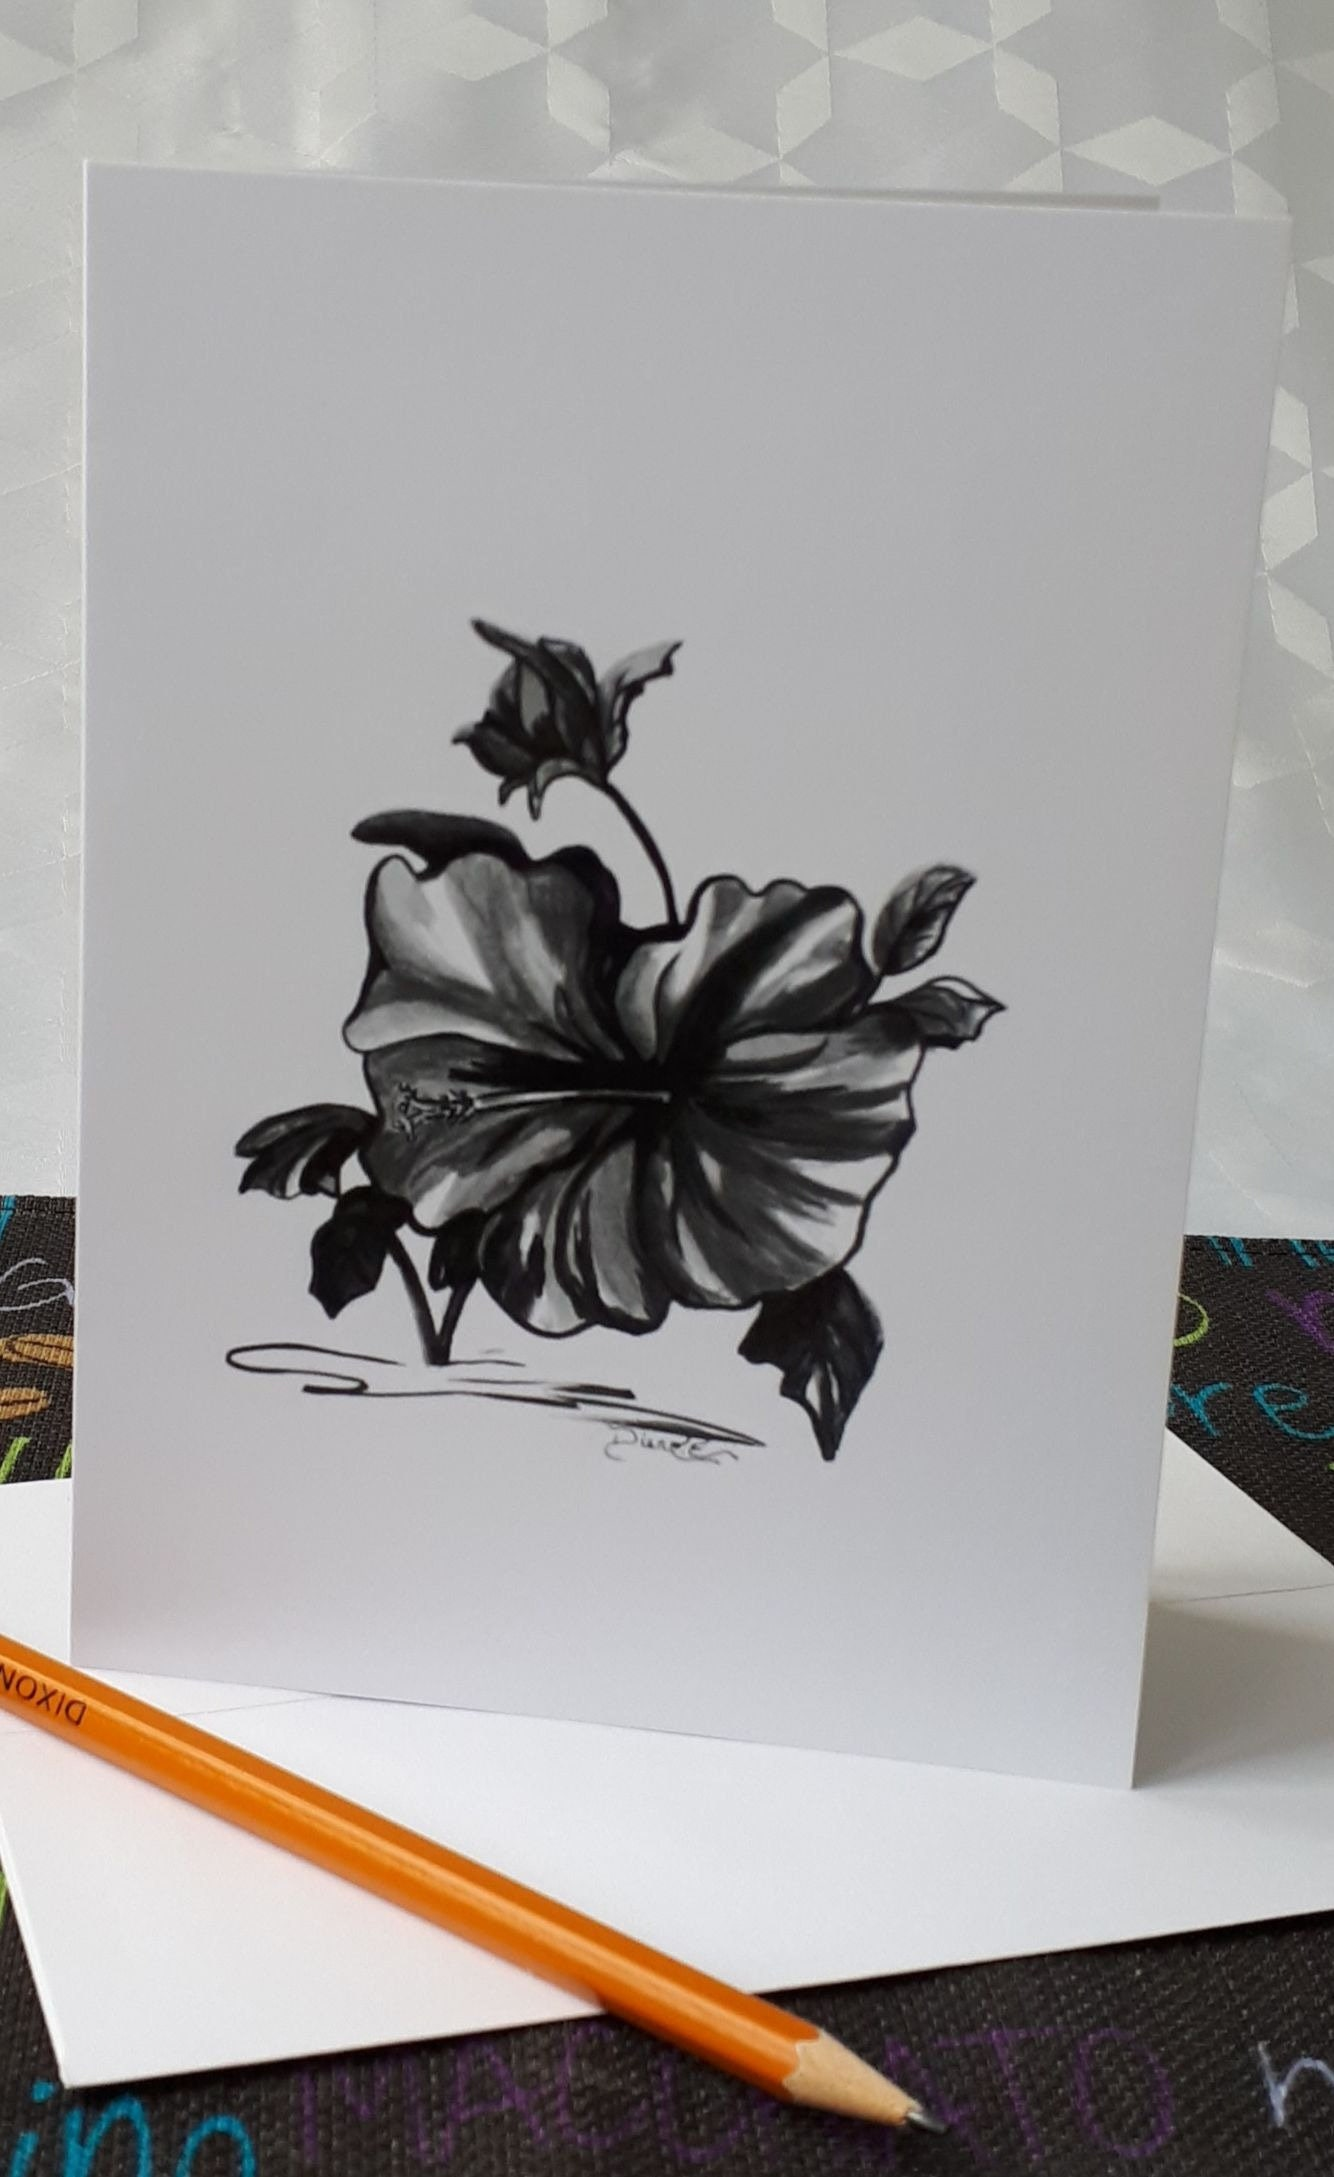 The Birthday Cardmothers Day Card Drawings In Black And White